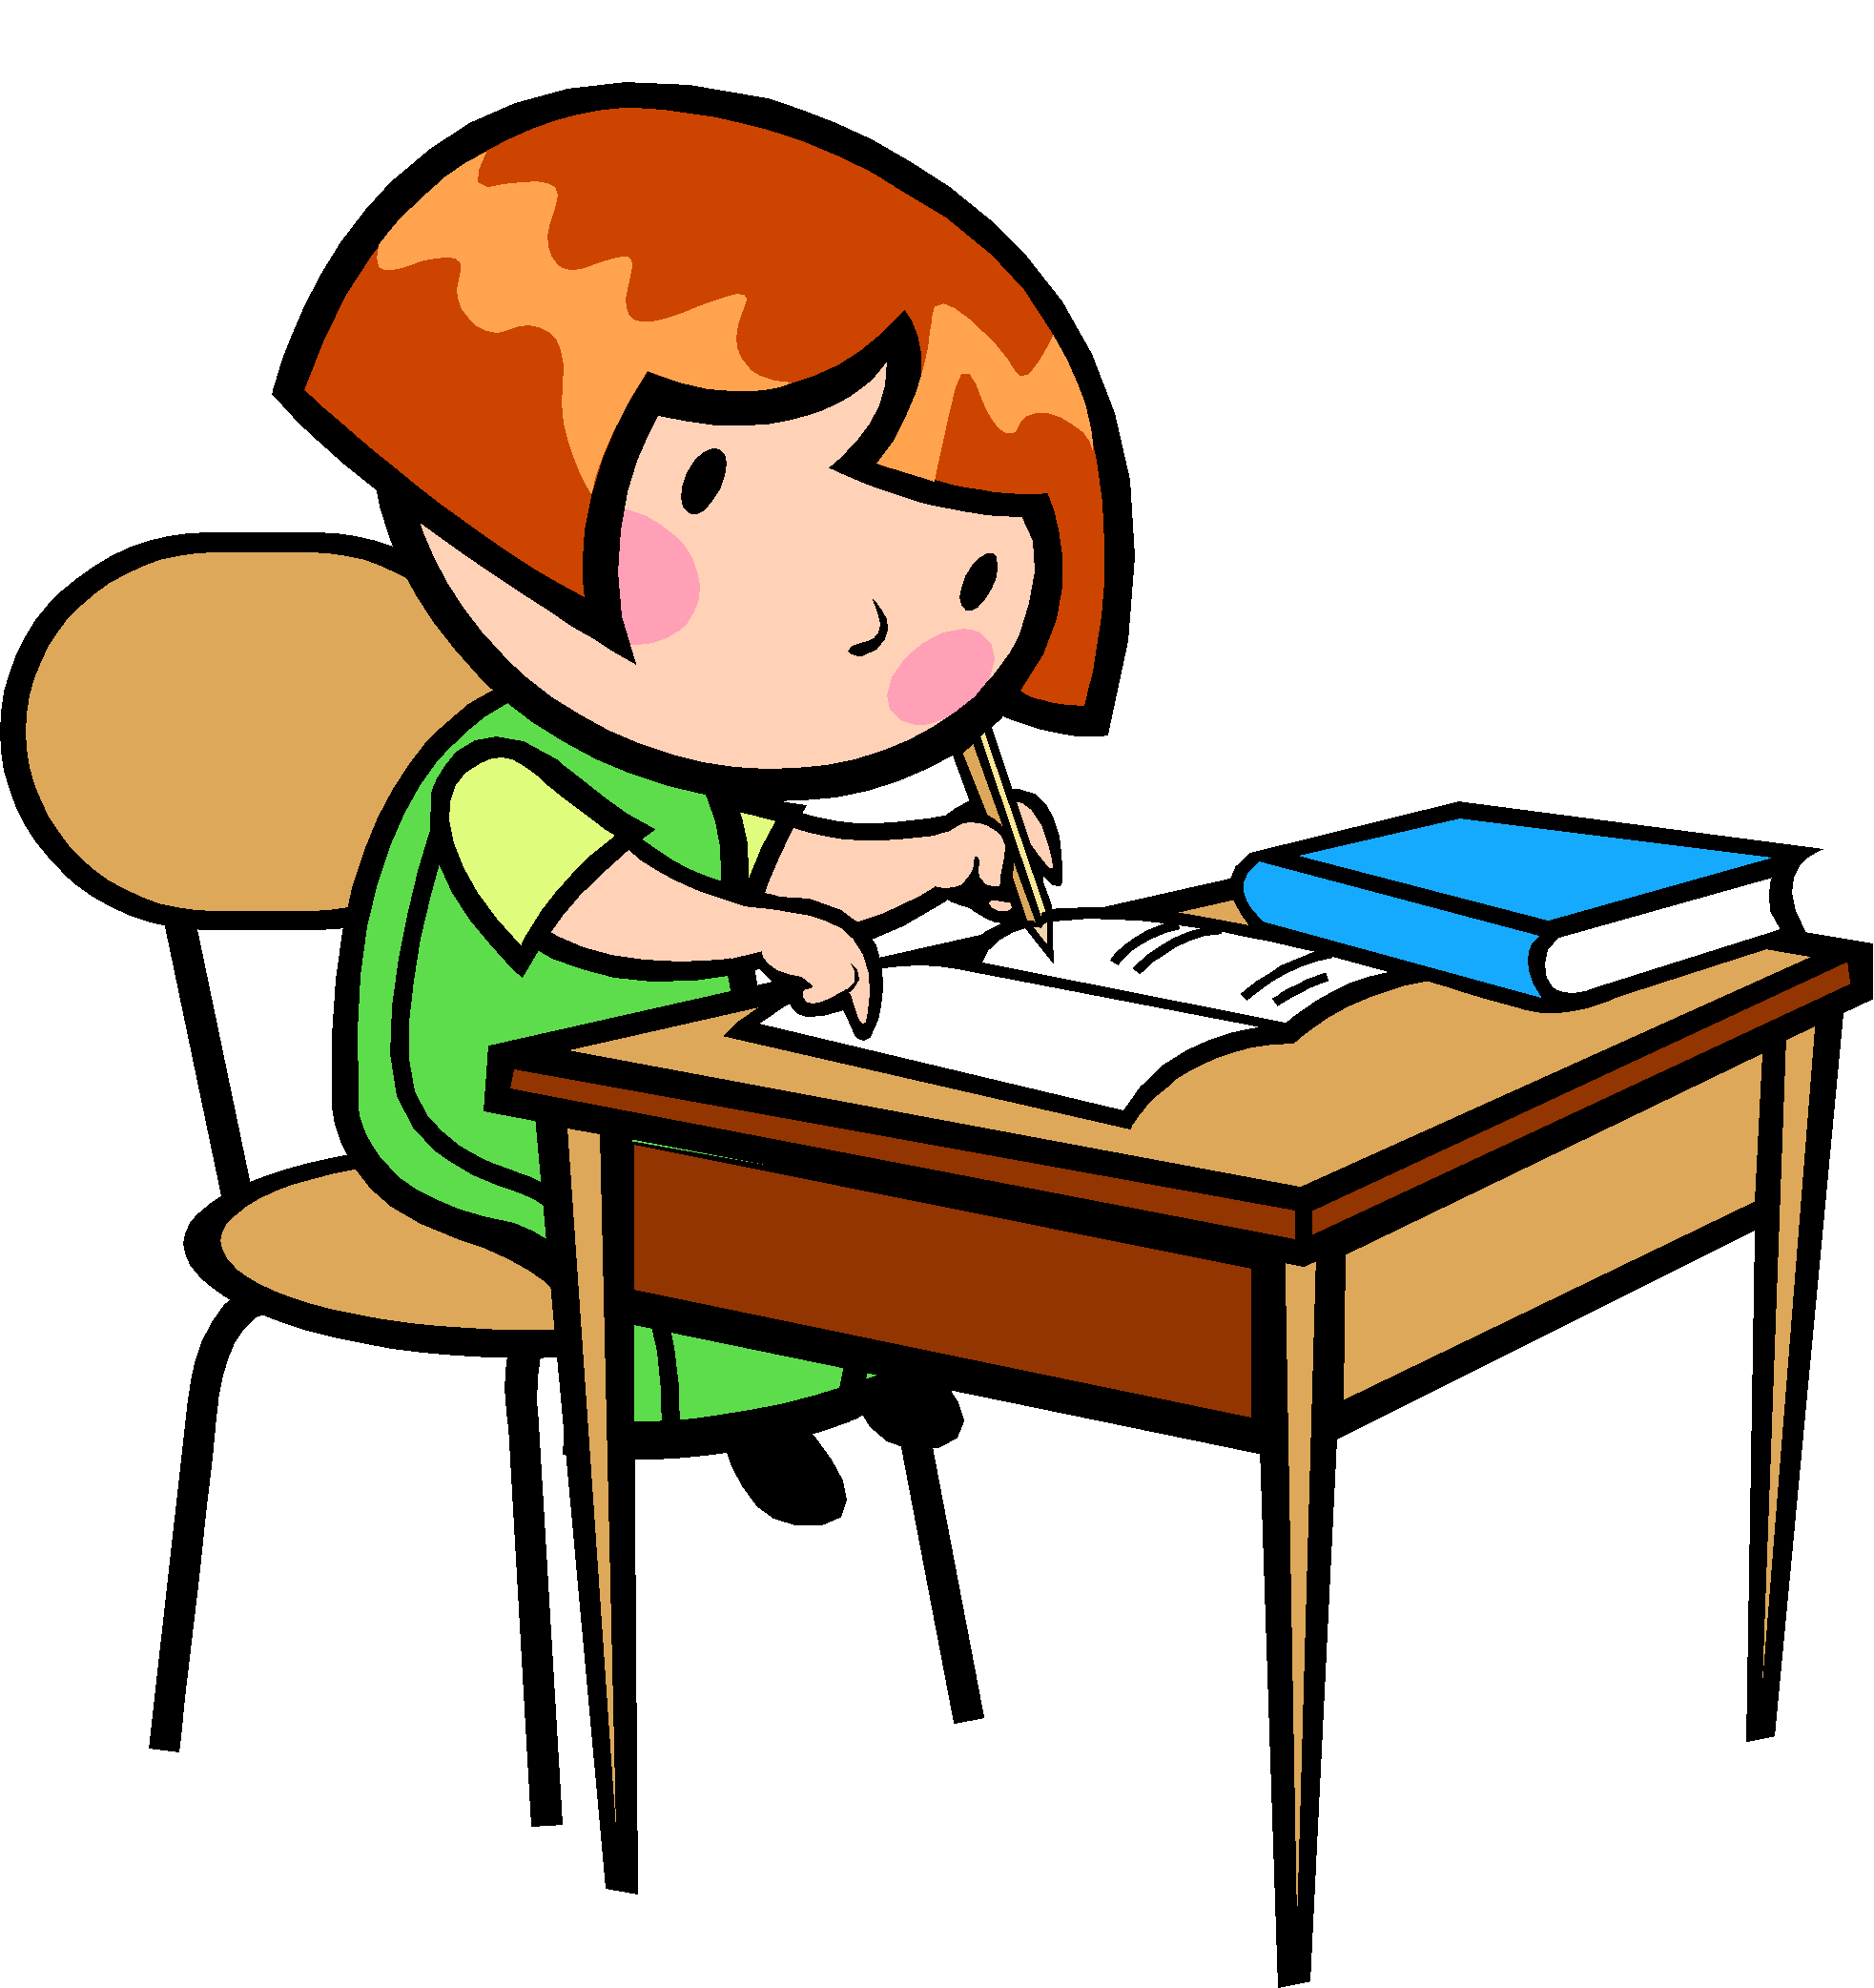 Free Images Of Children Writing Download Free Clip Art Free Clip Art On Clipart Library